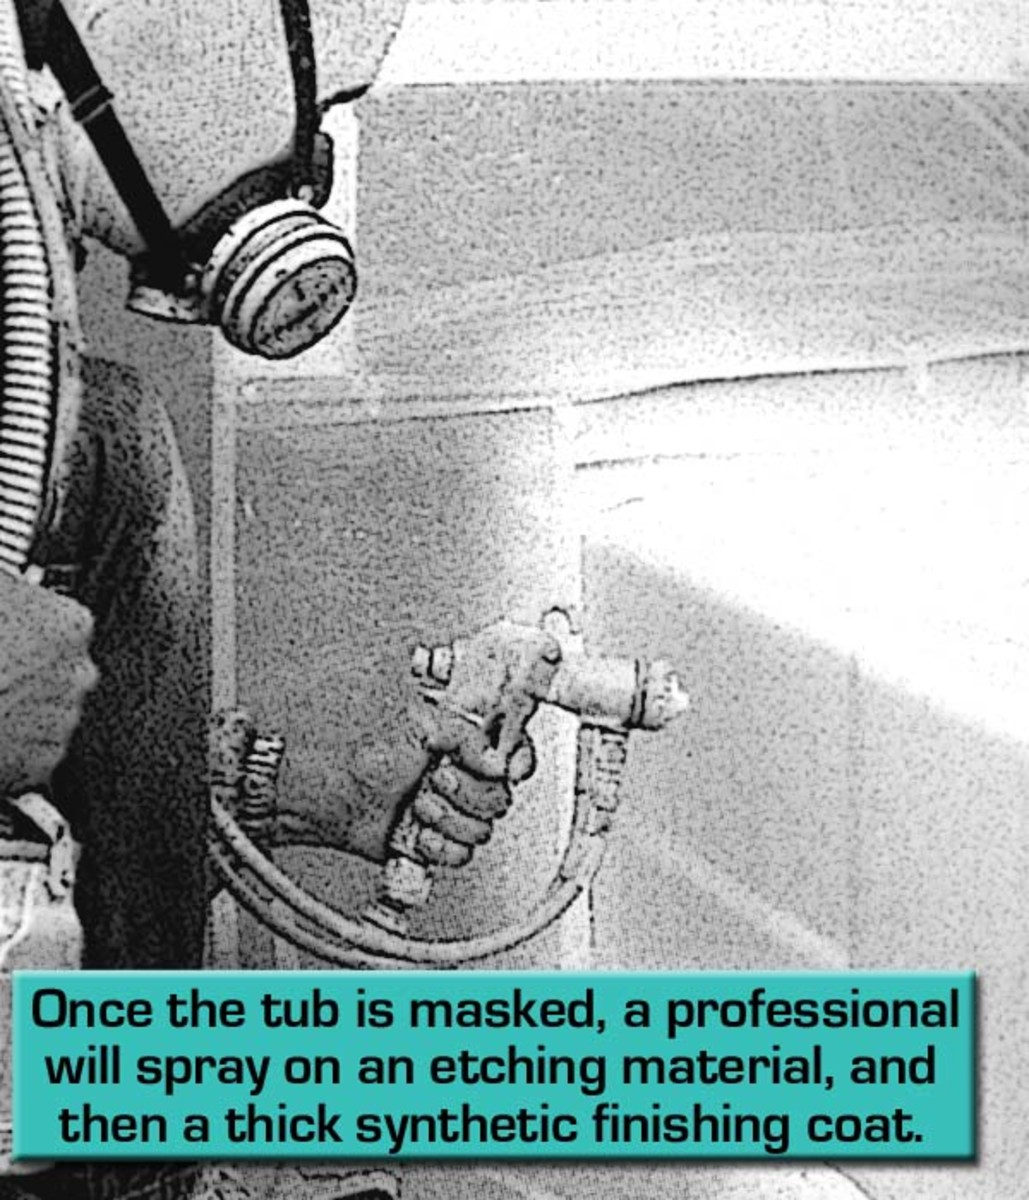 Refinishing a tub includes several applications of a plasticizing finish.